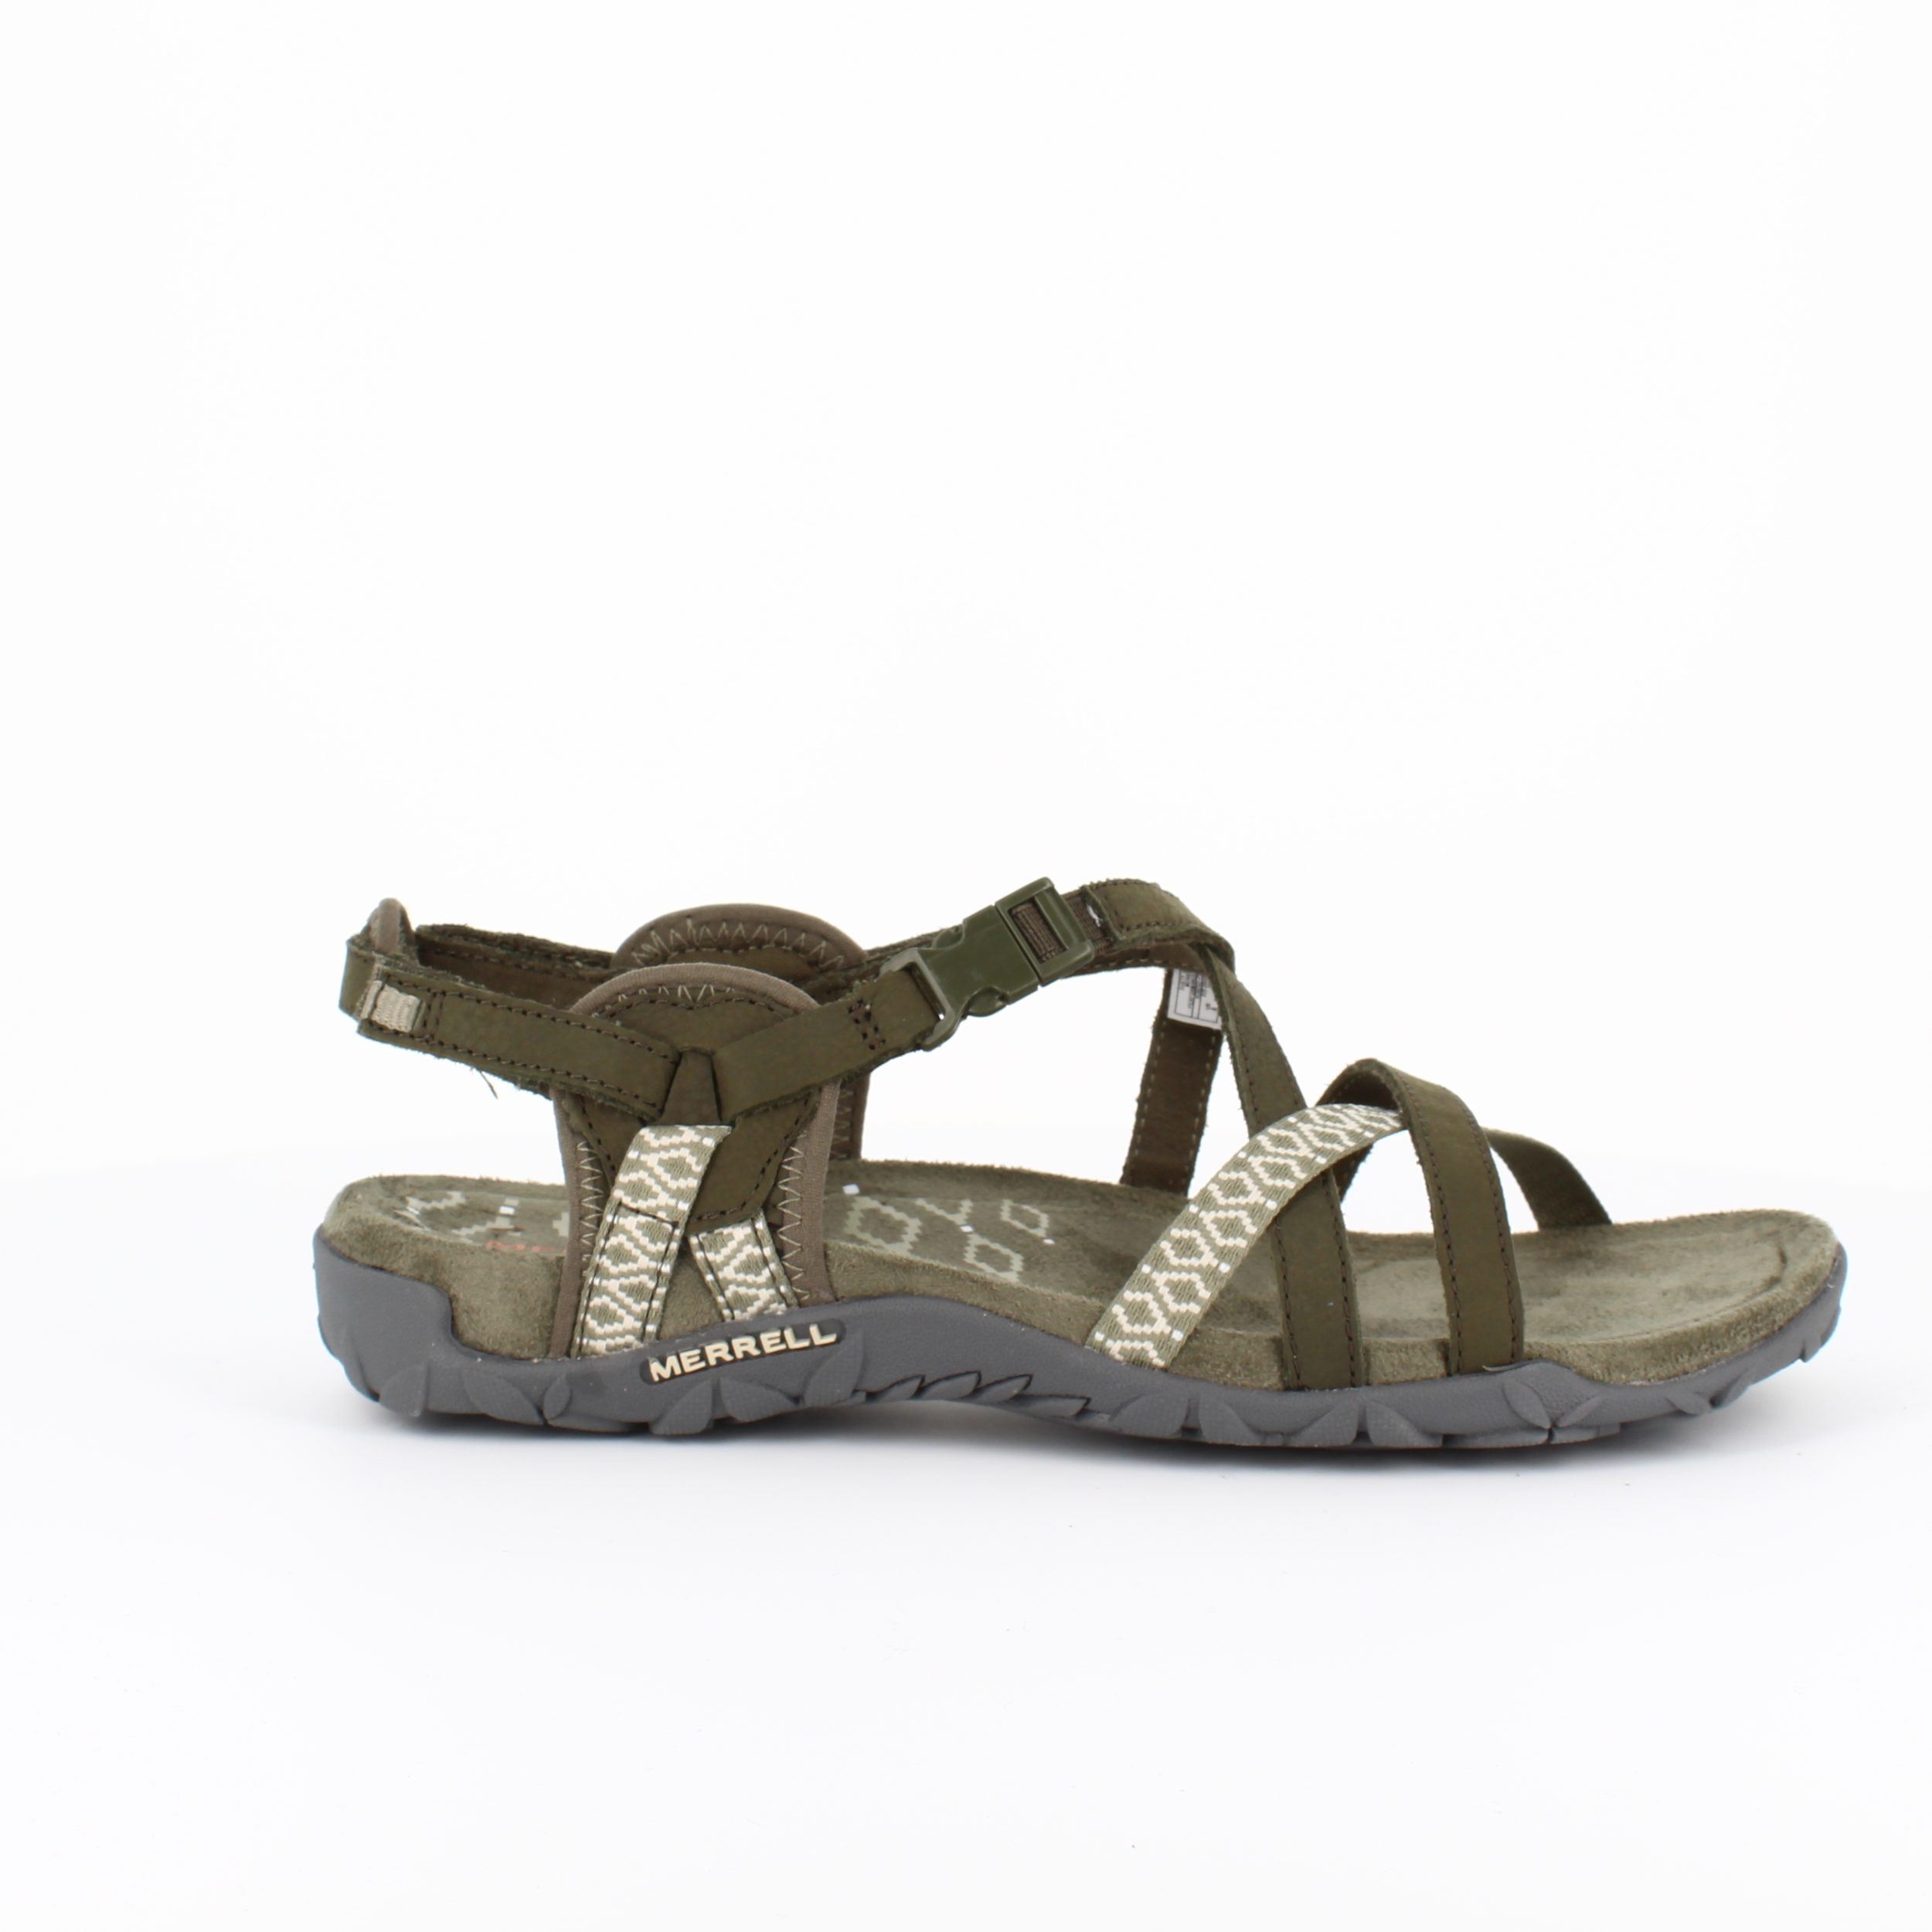 Image of   Olivenfarvet sandal, Terran Lattice sandal fra Merrell - 40